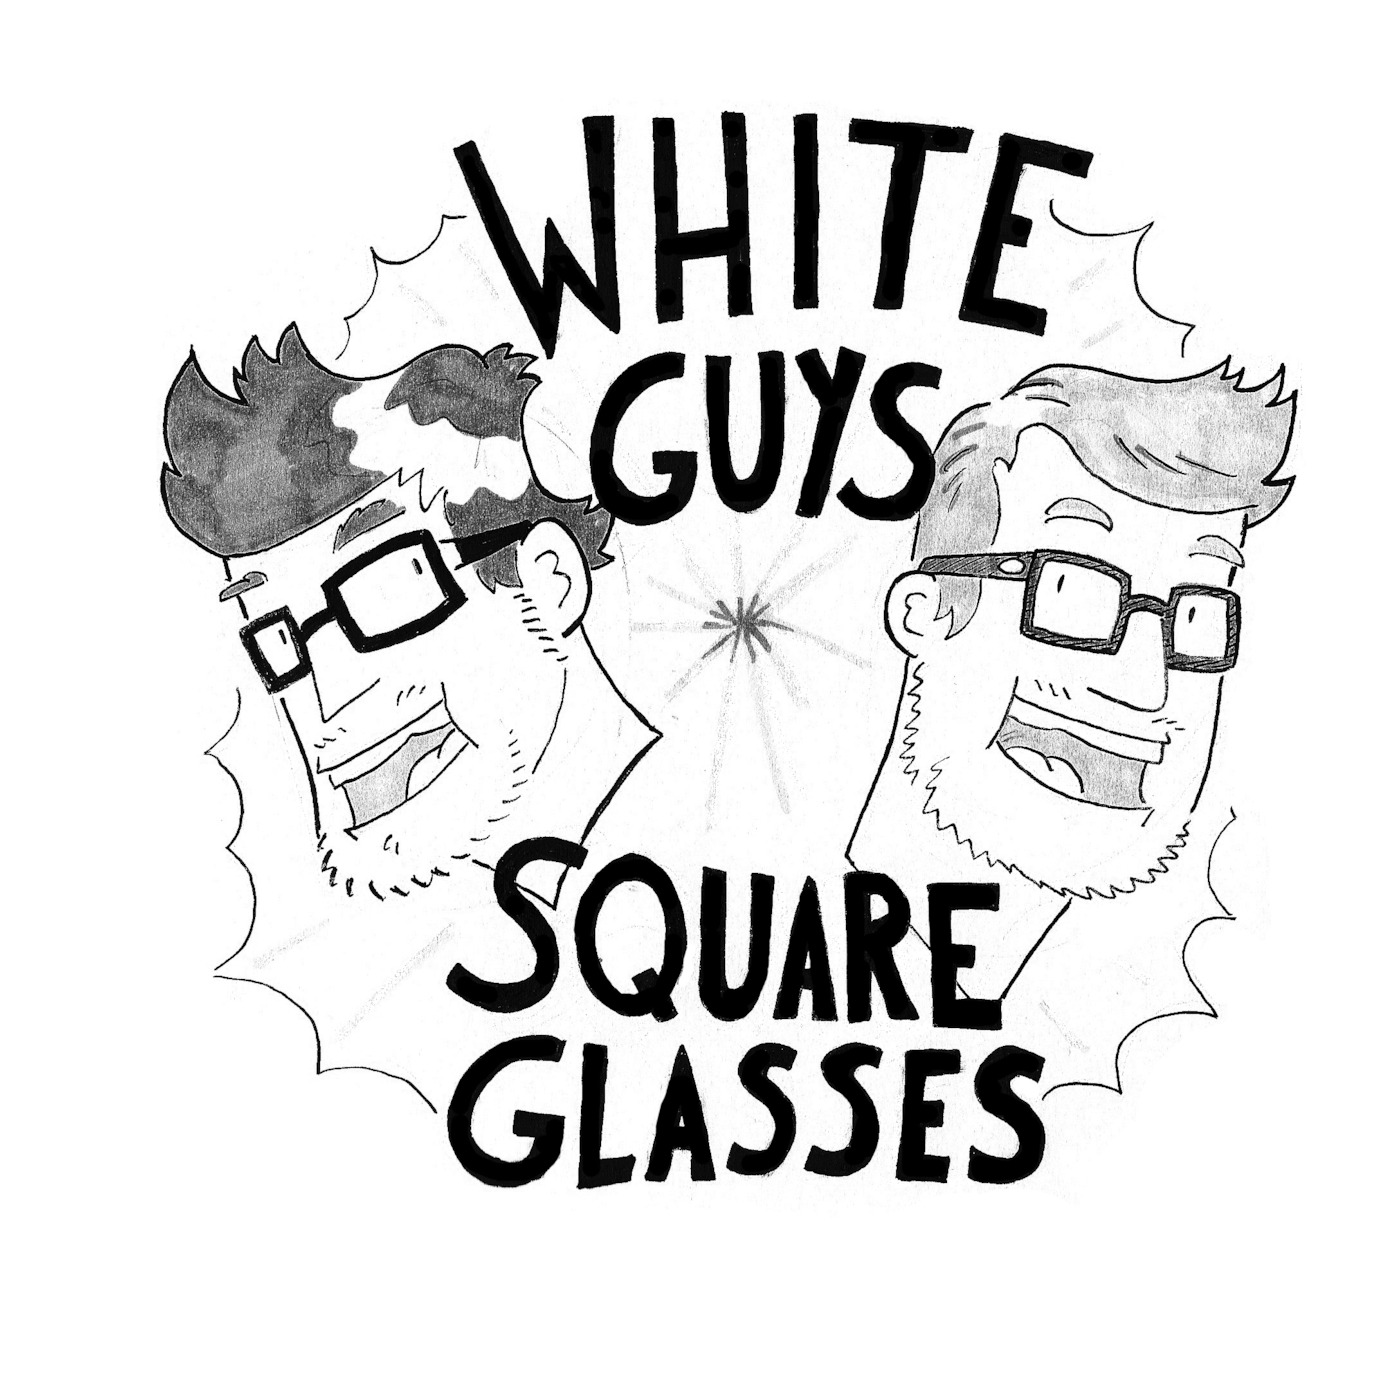 White Guys, Square Glasses